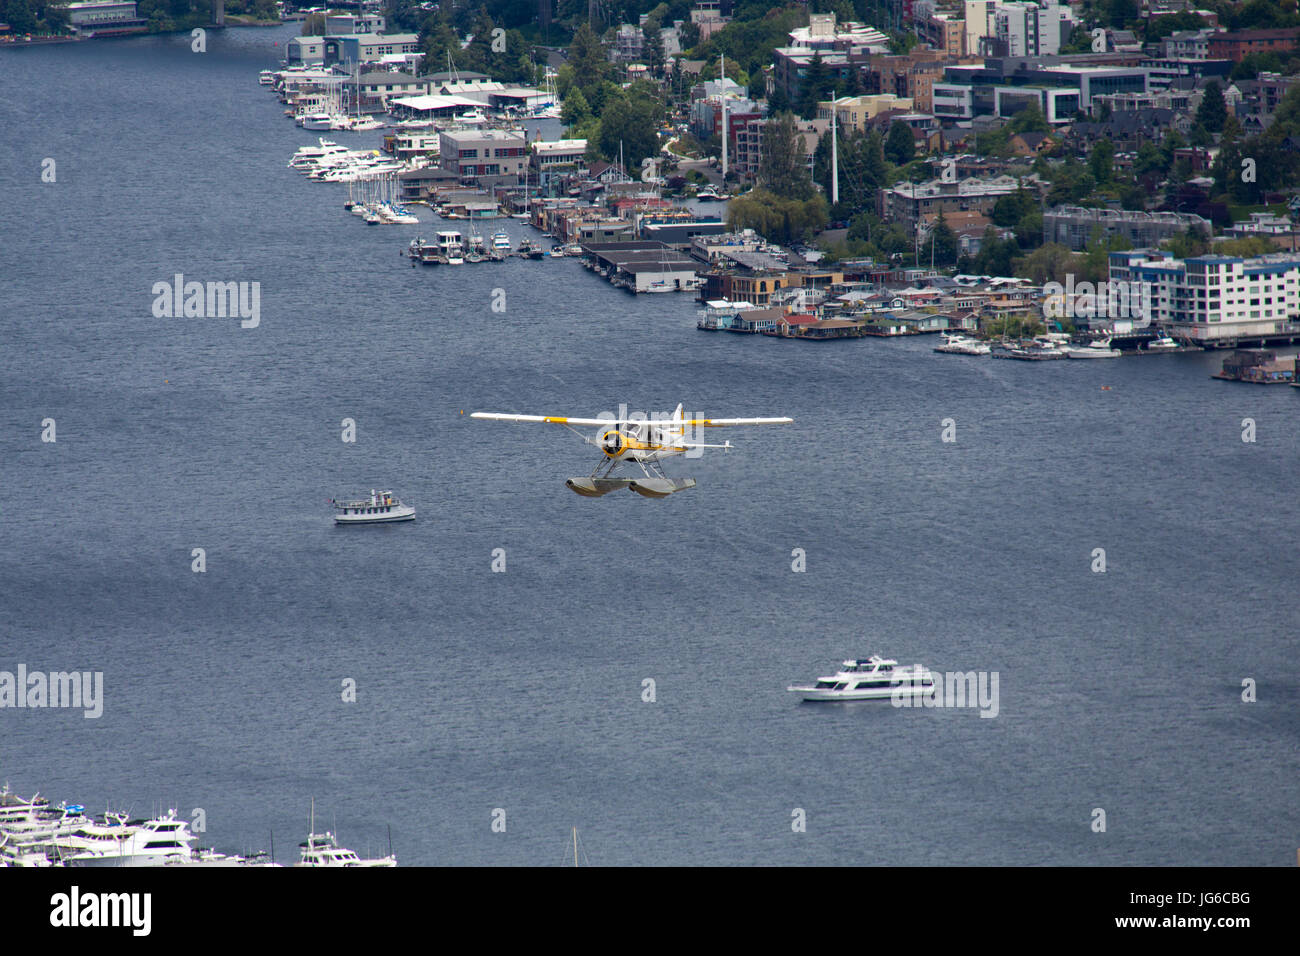 Seaplane is taking off from Lake Union in Seattle, Washington - Stock Image